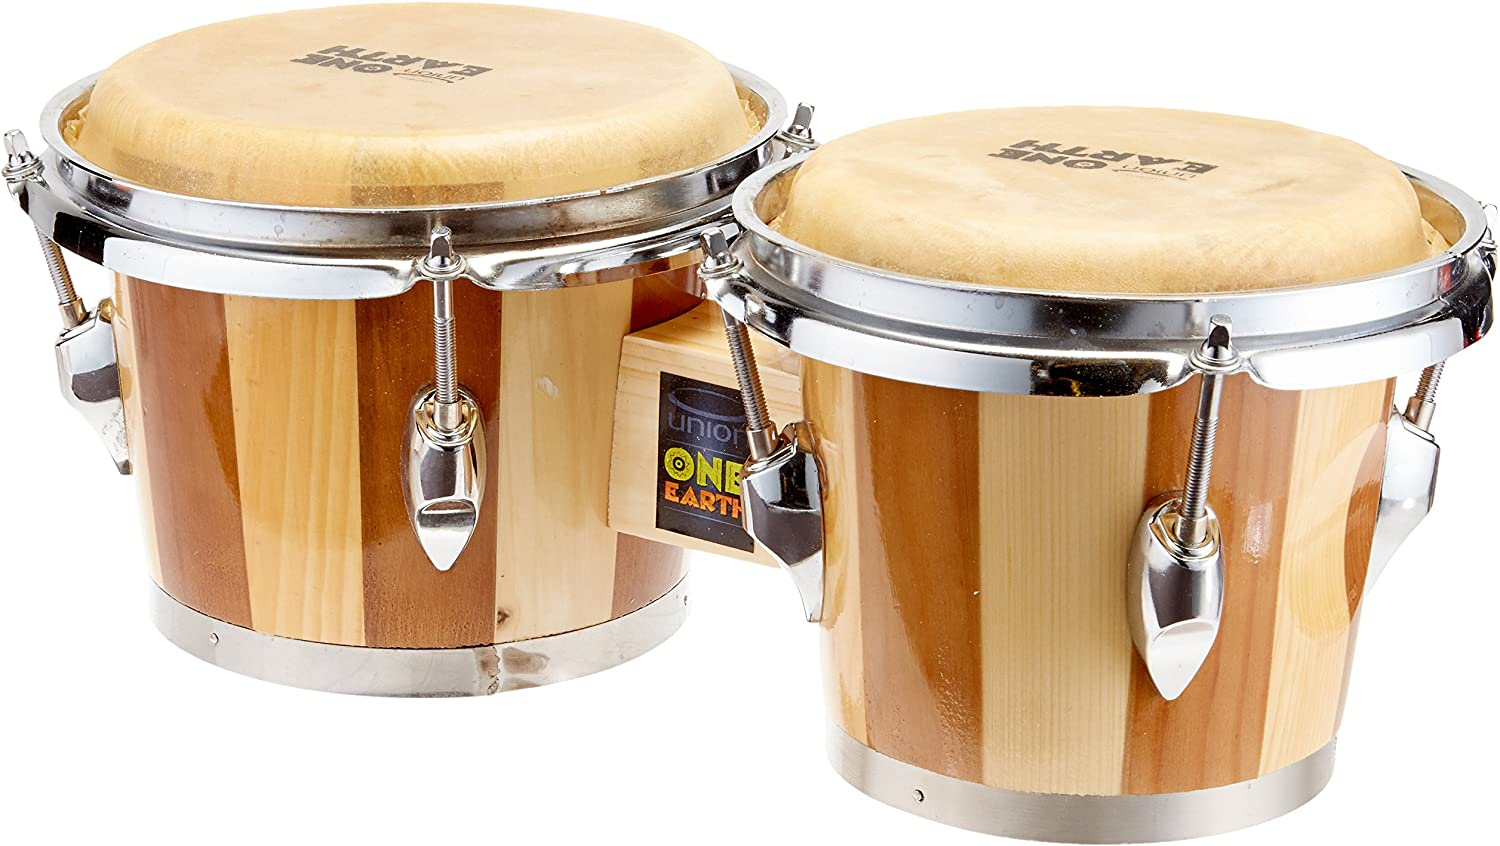 Union One Earth UB1 Bongo Drums: Amazon.co.uk: Musical Instruments